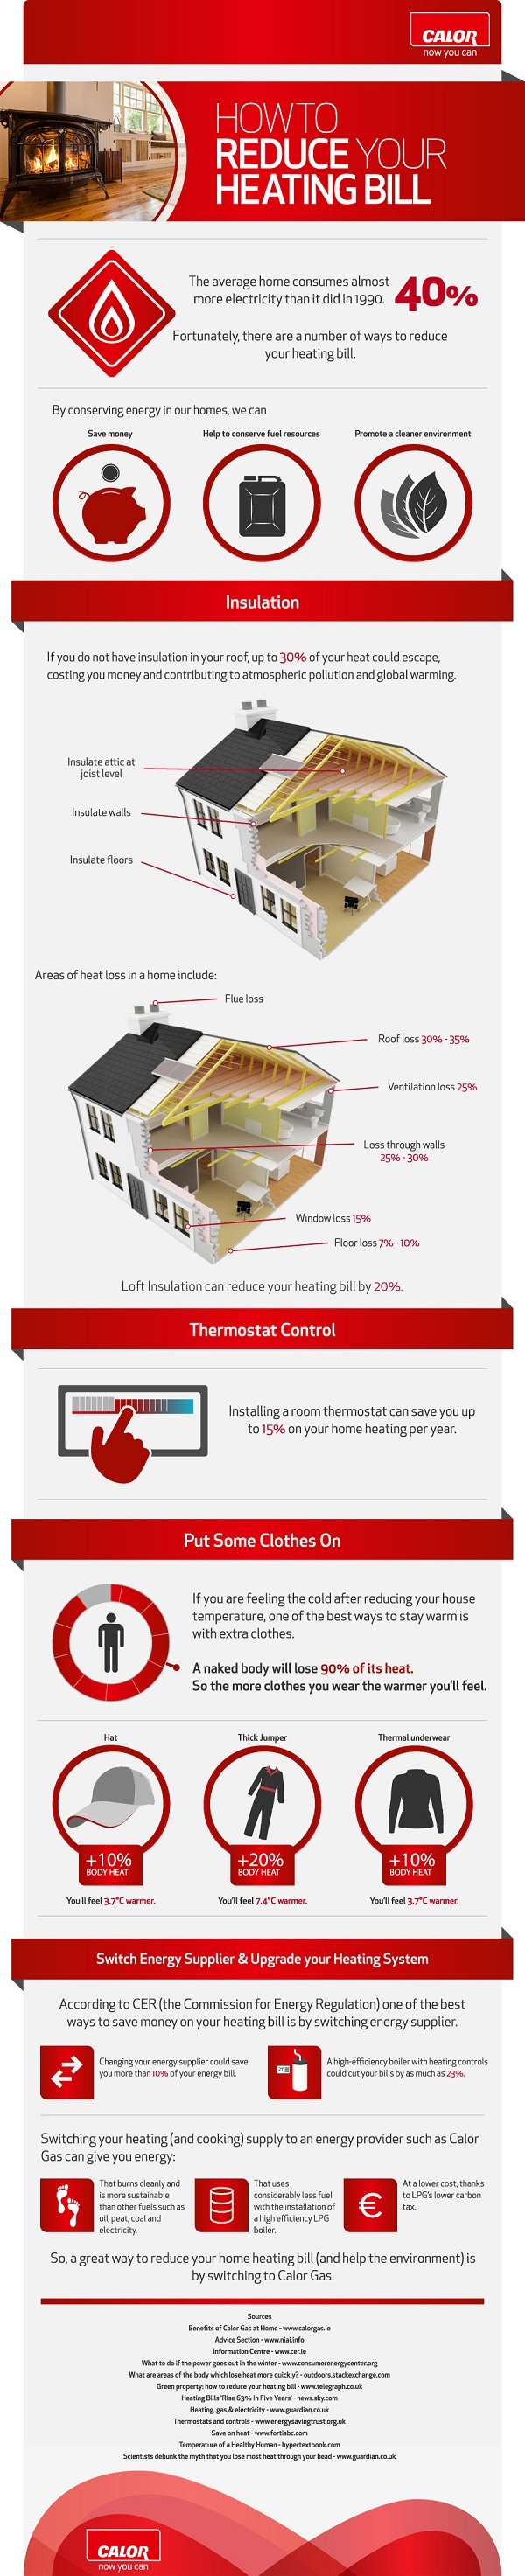 Tips to Help Save Heating Costs Infographic